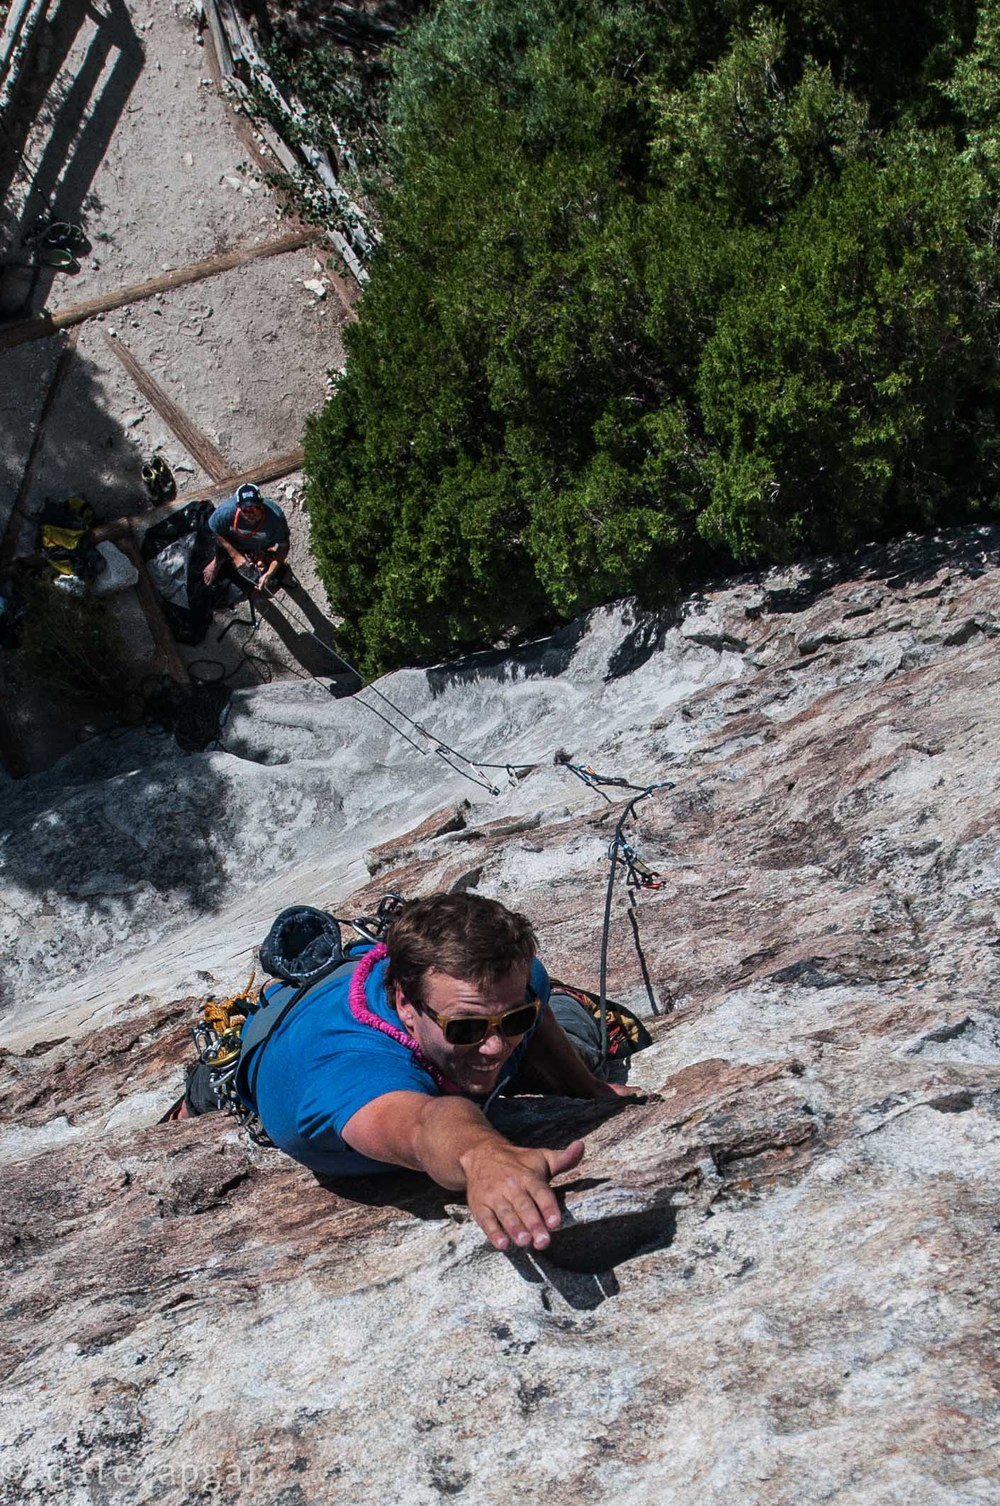 Chris Dickey on 'Too Much Fun' at the City of Rocks